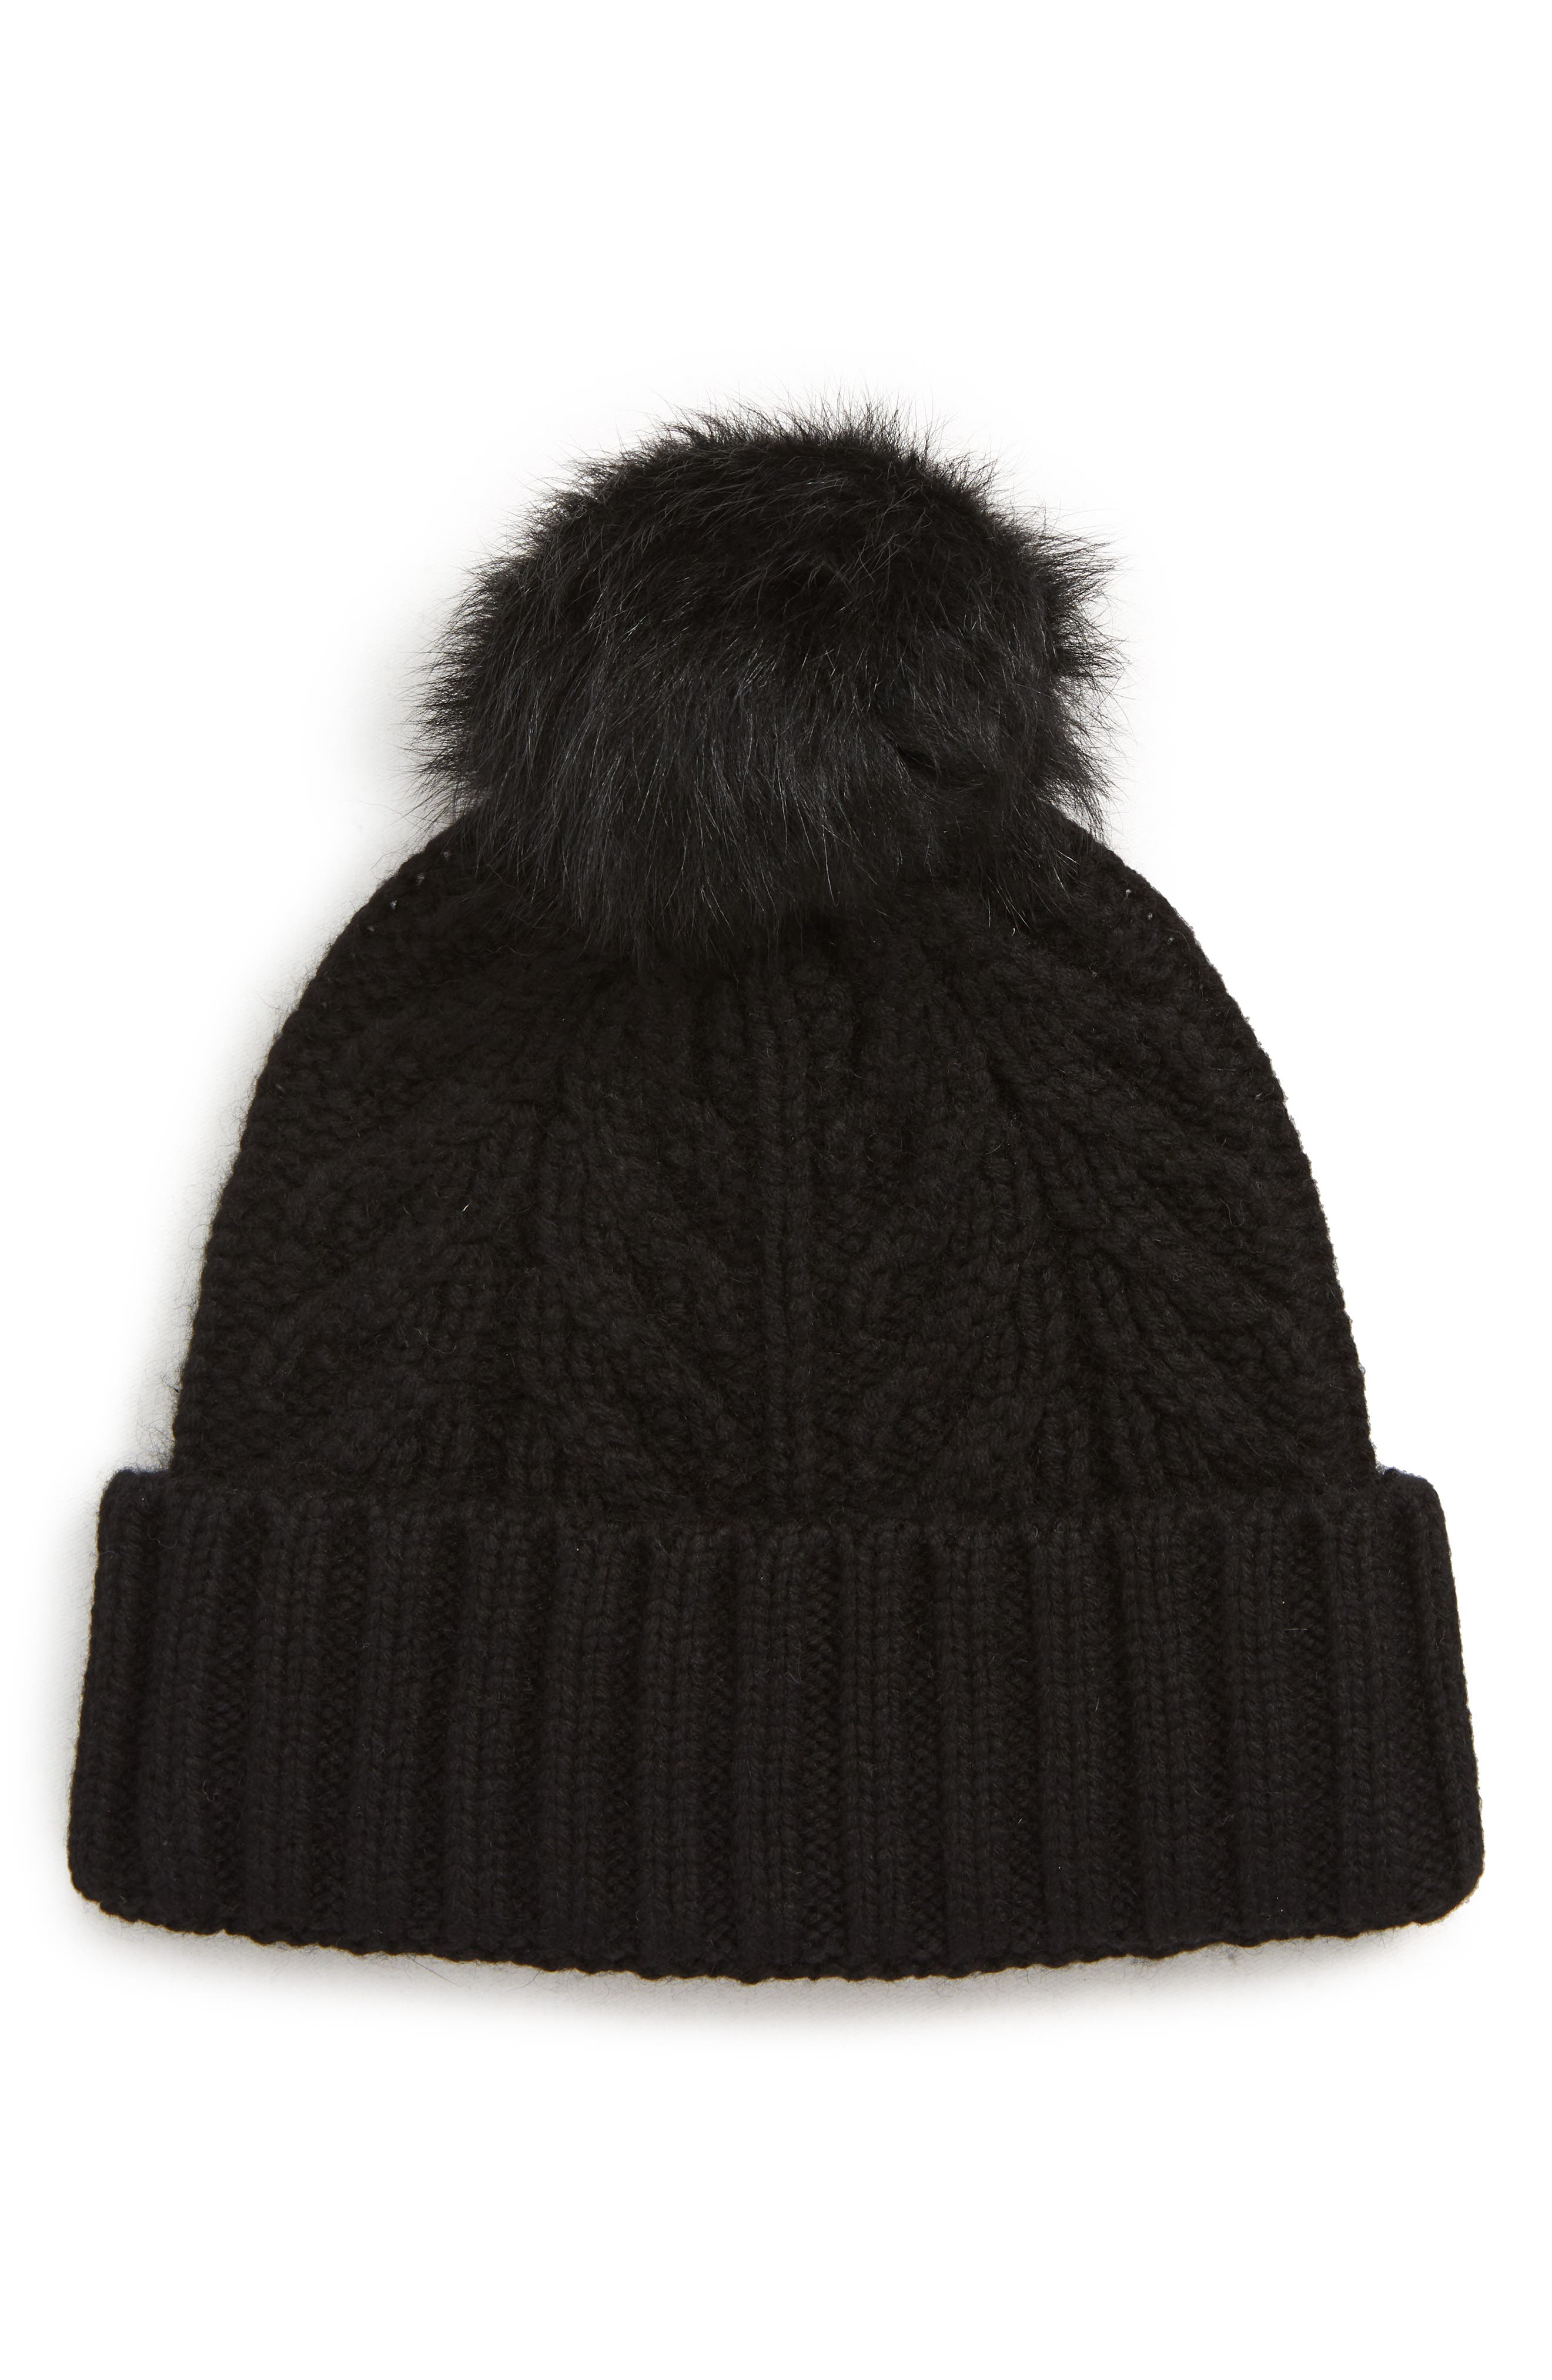 UGG<sup>®</sup> Pompom Cable Genuine Shearling Beanie,                             Main thumbnail 1, color,                             BLACK